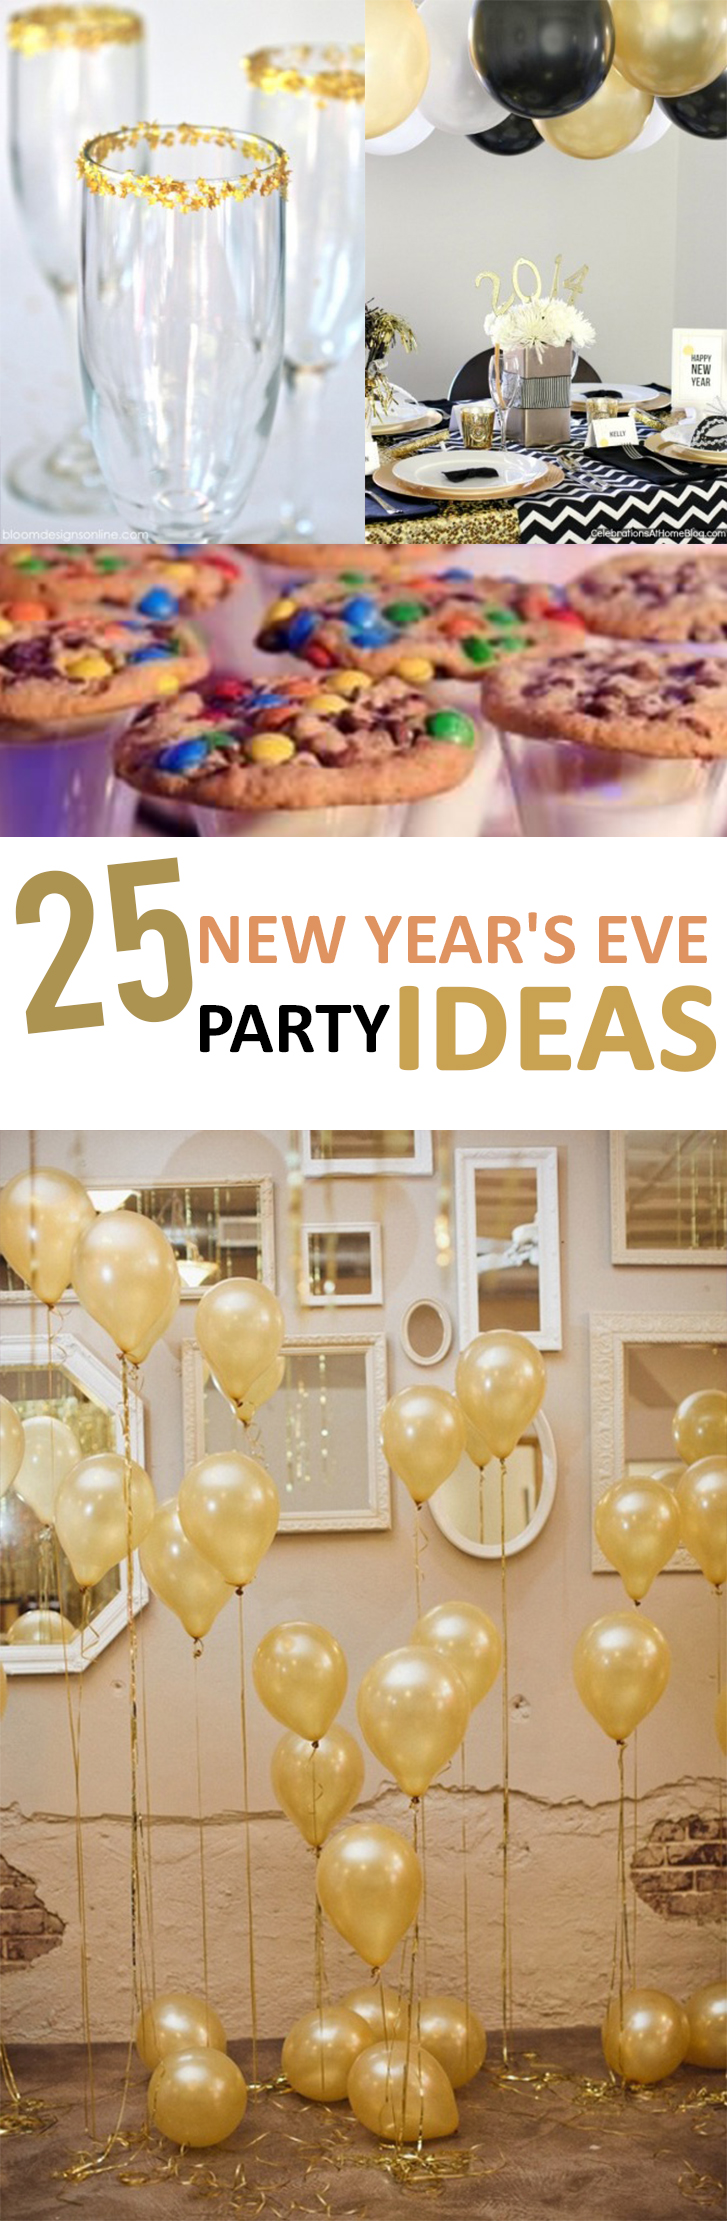 25 New Year's Eve Party Ideas - Page 2 of 26